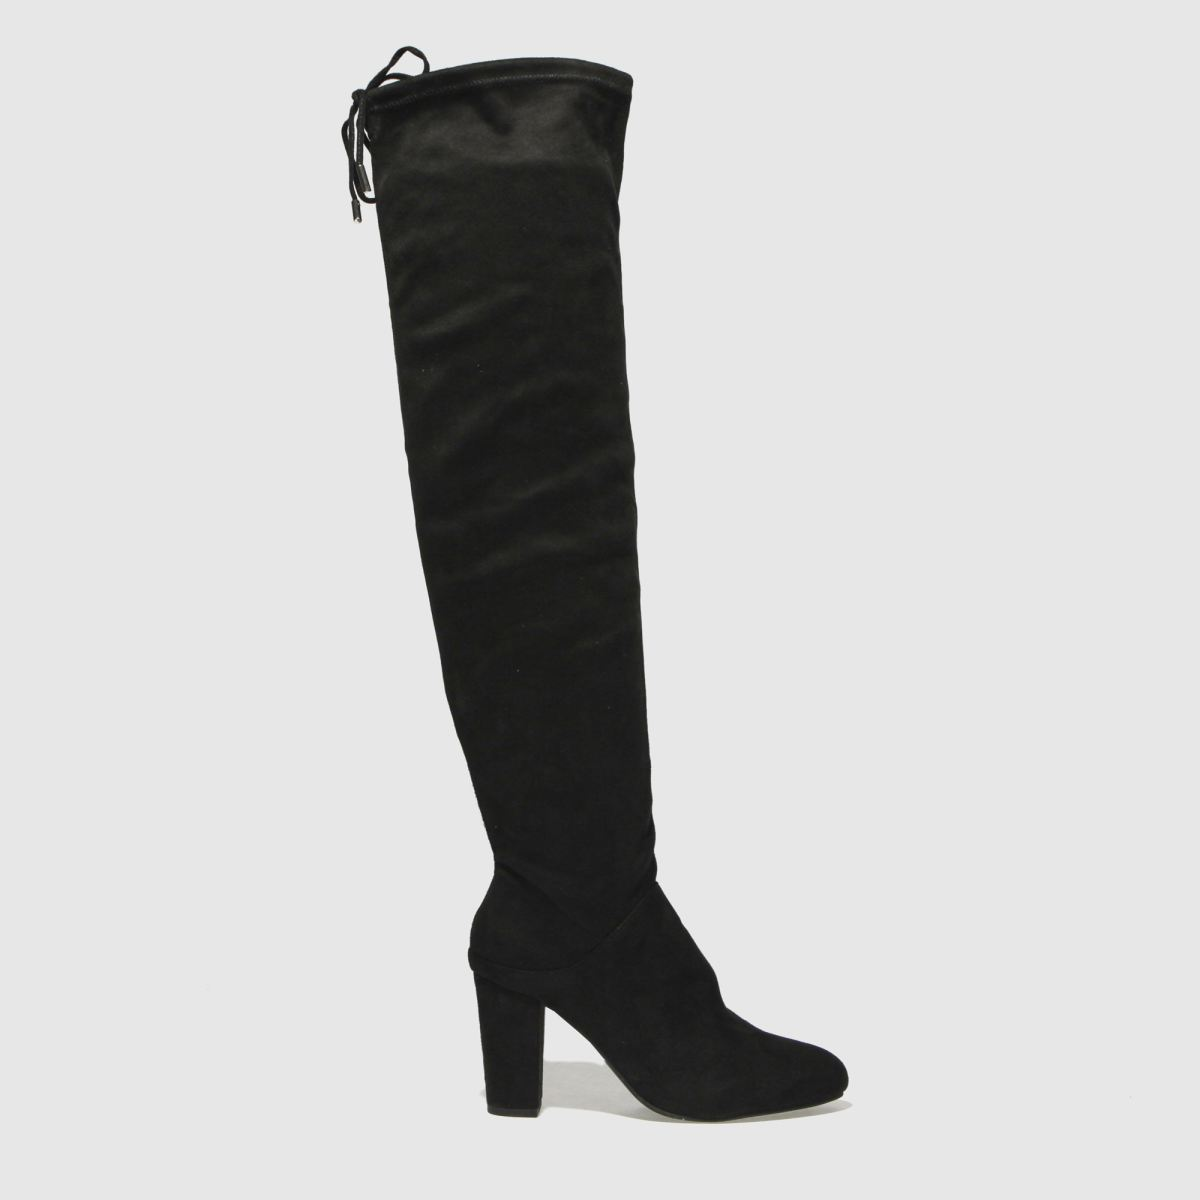 Schuh Black Dolly Boots